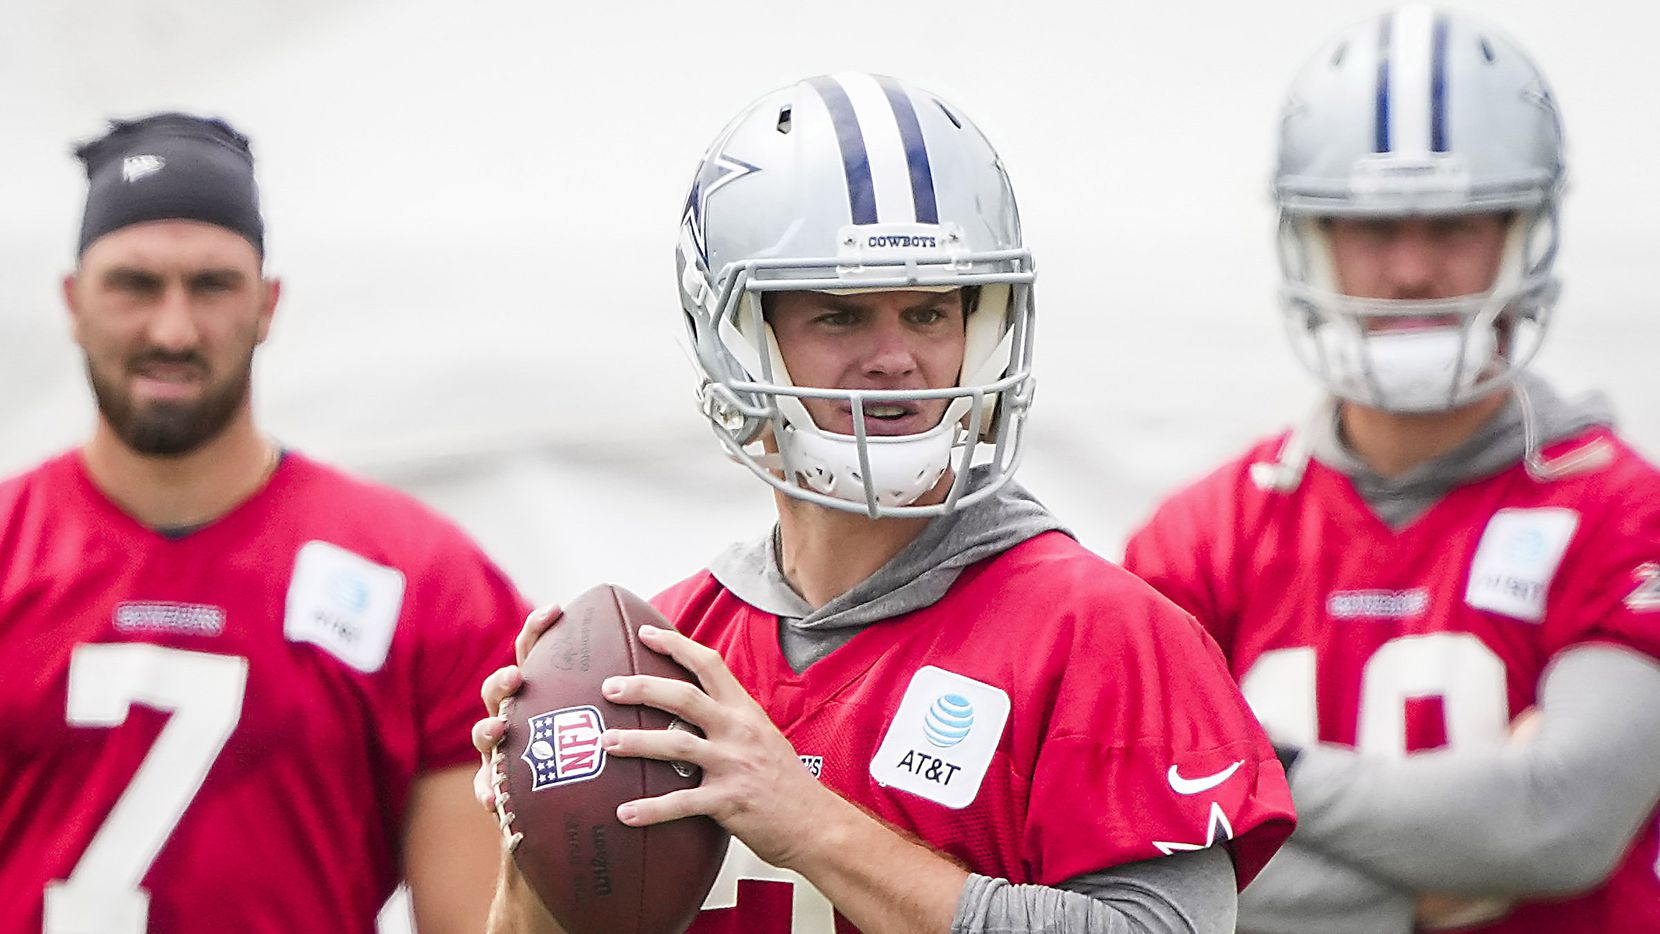 Dallas Cowboys quarterback Garrett Gilbert (3) looks to pass as quarterback Ben DiNucci (7) and quarterback Cooper Rush (10) look on during a practice at training camp on Saturday, July 24, 2021, in Oxnard, Calif.